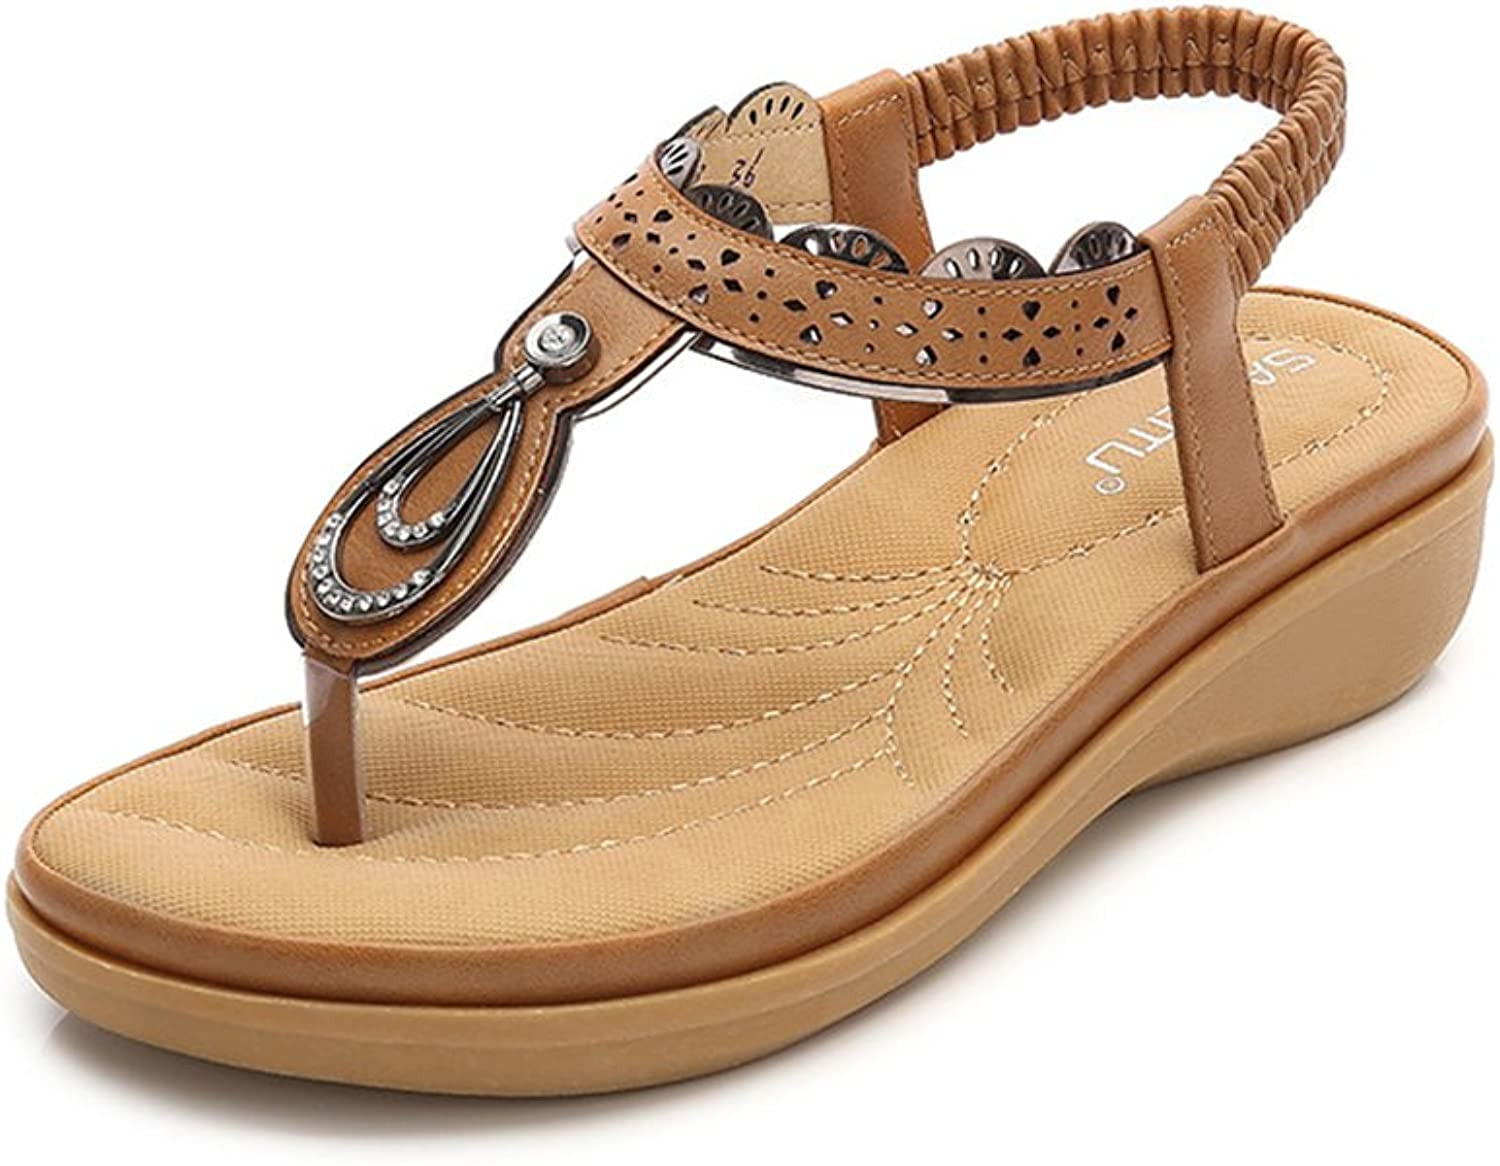 Tuoup Women's Leather Anti-Skid Flat Sandles Beach Thong Sandals